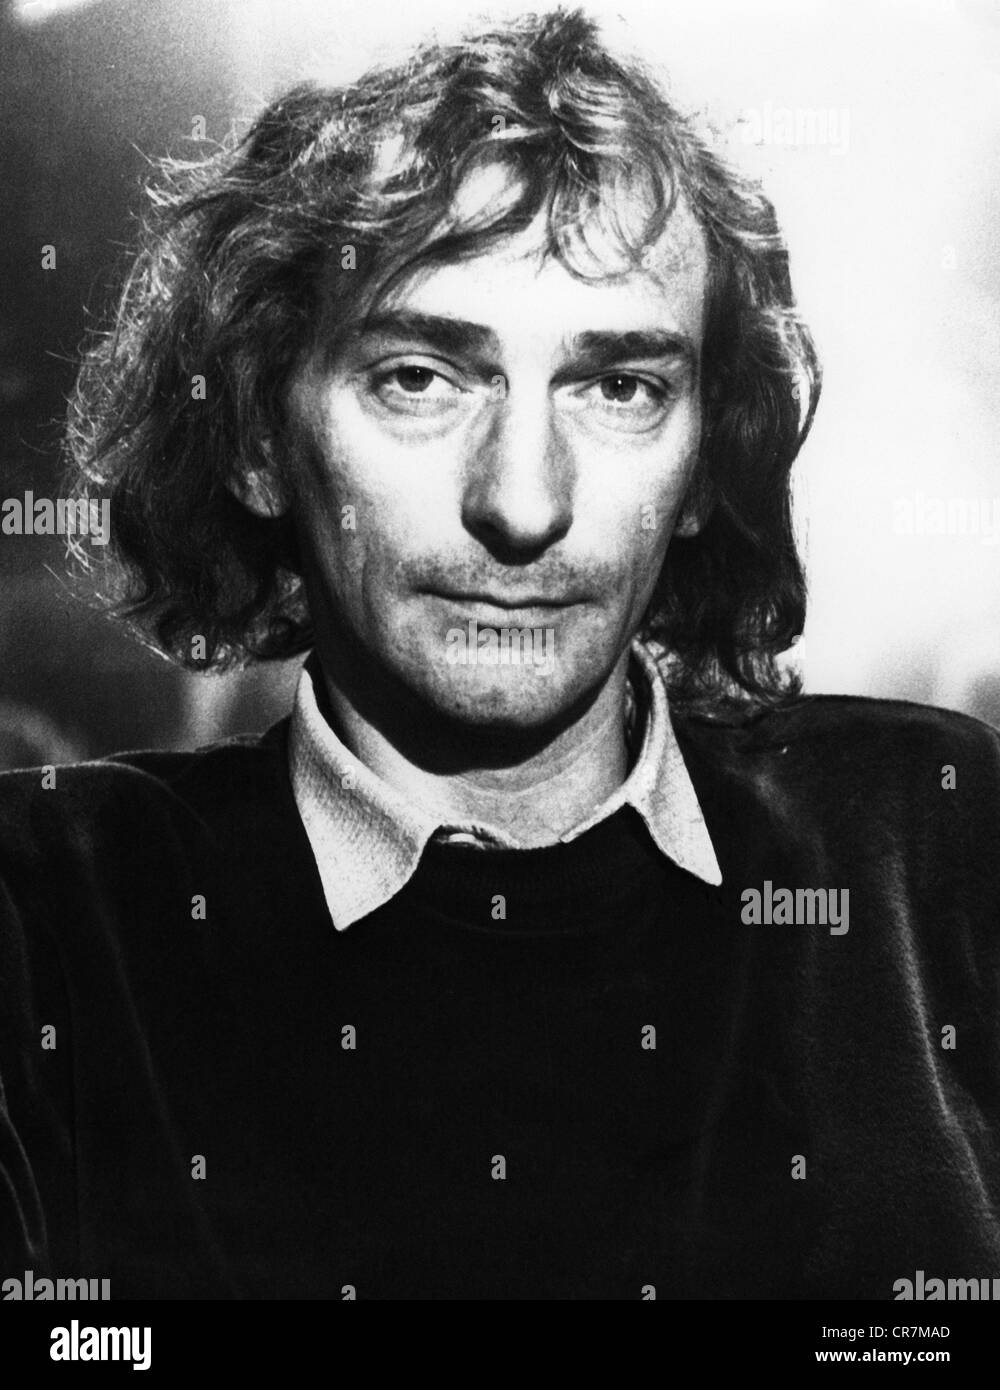 Hirsch, Ludwig, 28.2.1946 - 24.11.2011, Austrian, musician, singer, actor, portrait, 1970s, Additional-Rights-Clearances - Stock Image